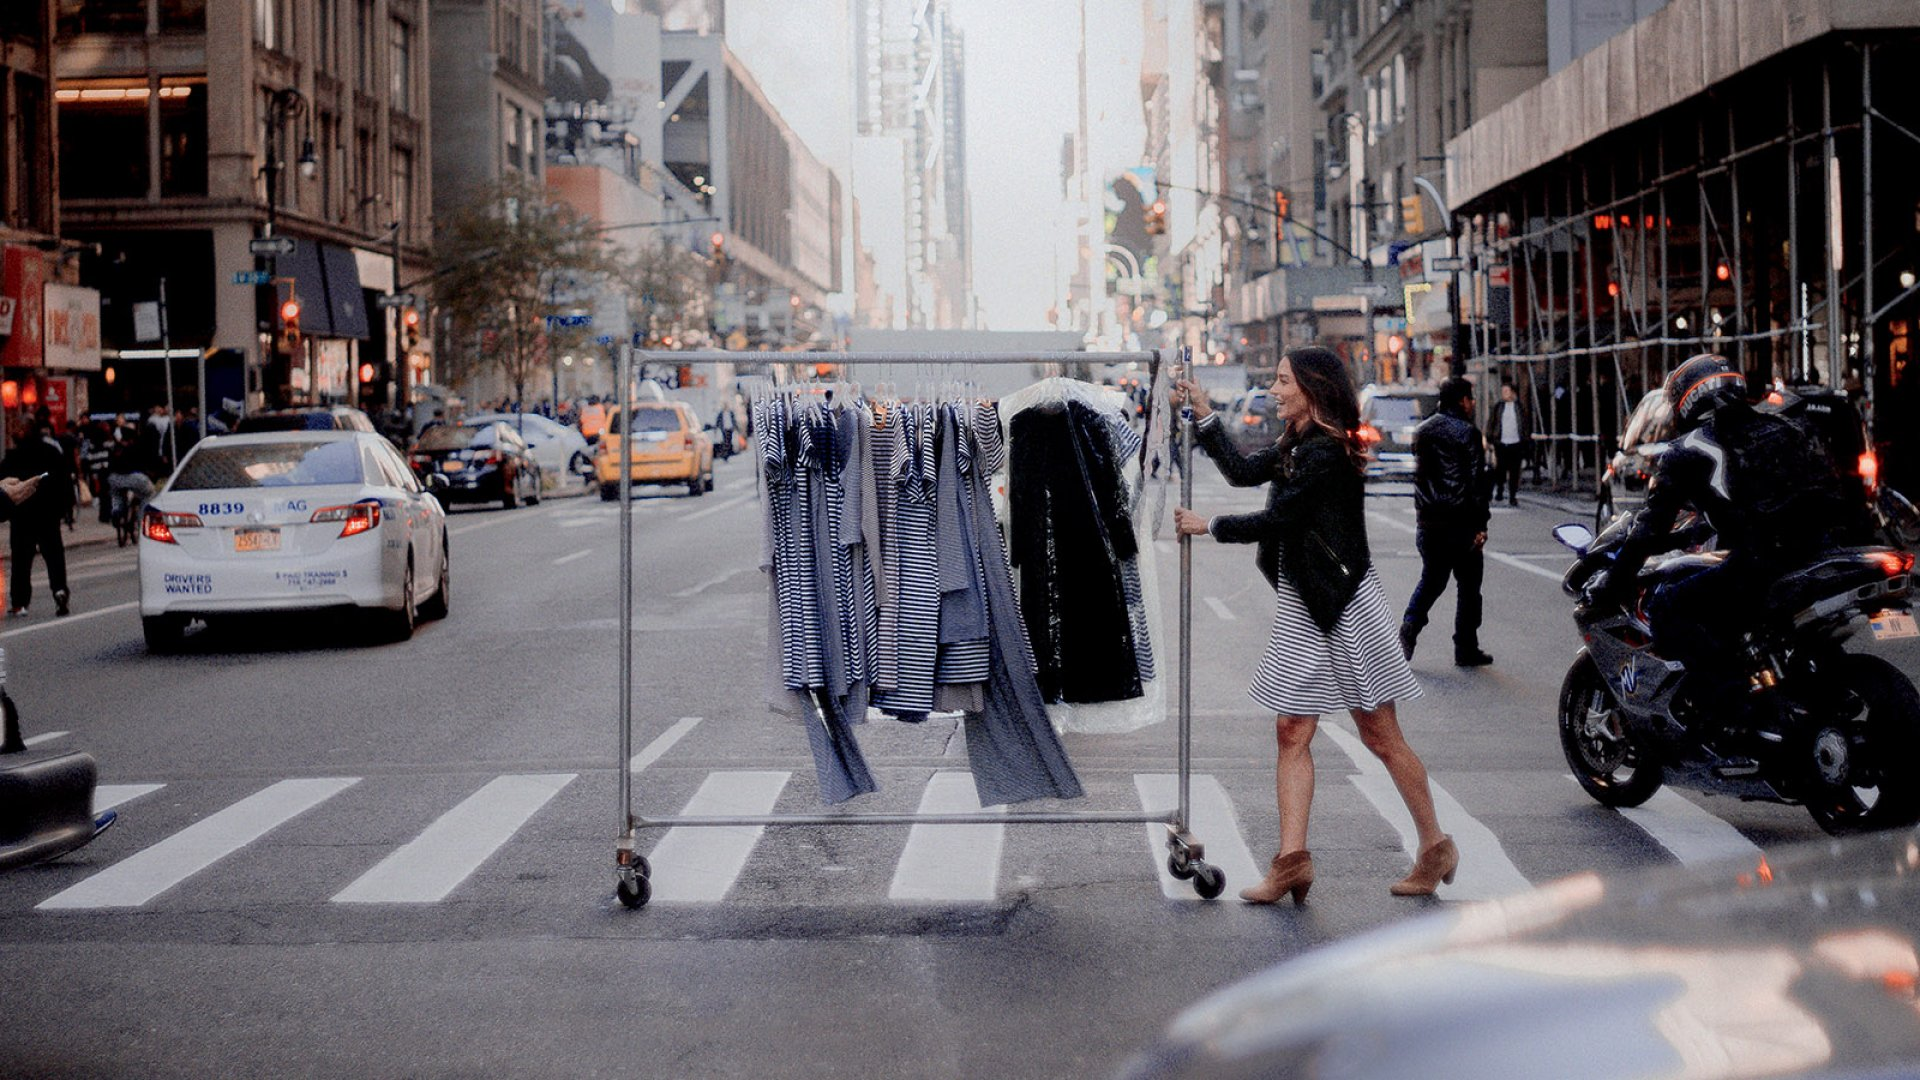 Kristin Celano rolls a rack of her sports-team-inspired apparel in New York City's garment district. After a decade as a tech executive, Celano could no longer delay her dream of becoming an entrepreneur and started women's clothing company JaneHudson. The rate of women starting businesses rose in 2016.